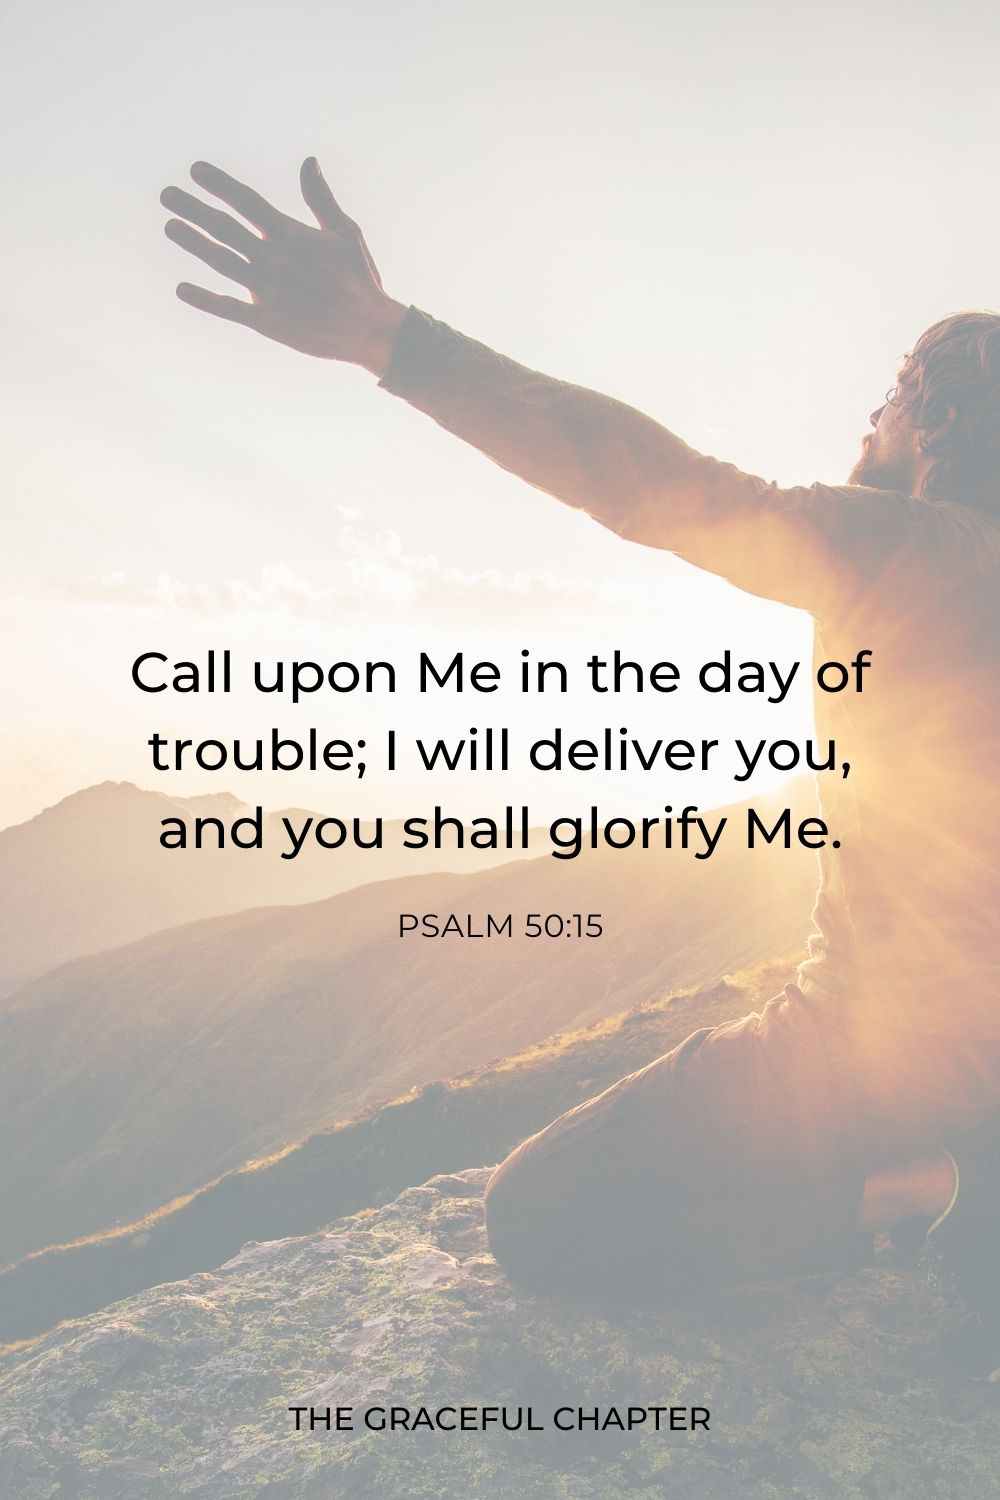 Call upon Me in the day of trouble; I will deliver you, and you shall glorify Me. Psalm 50:15